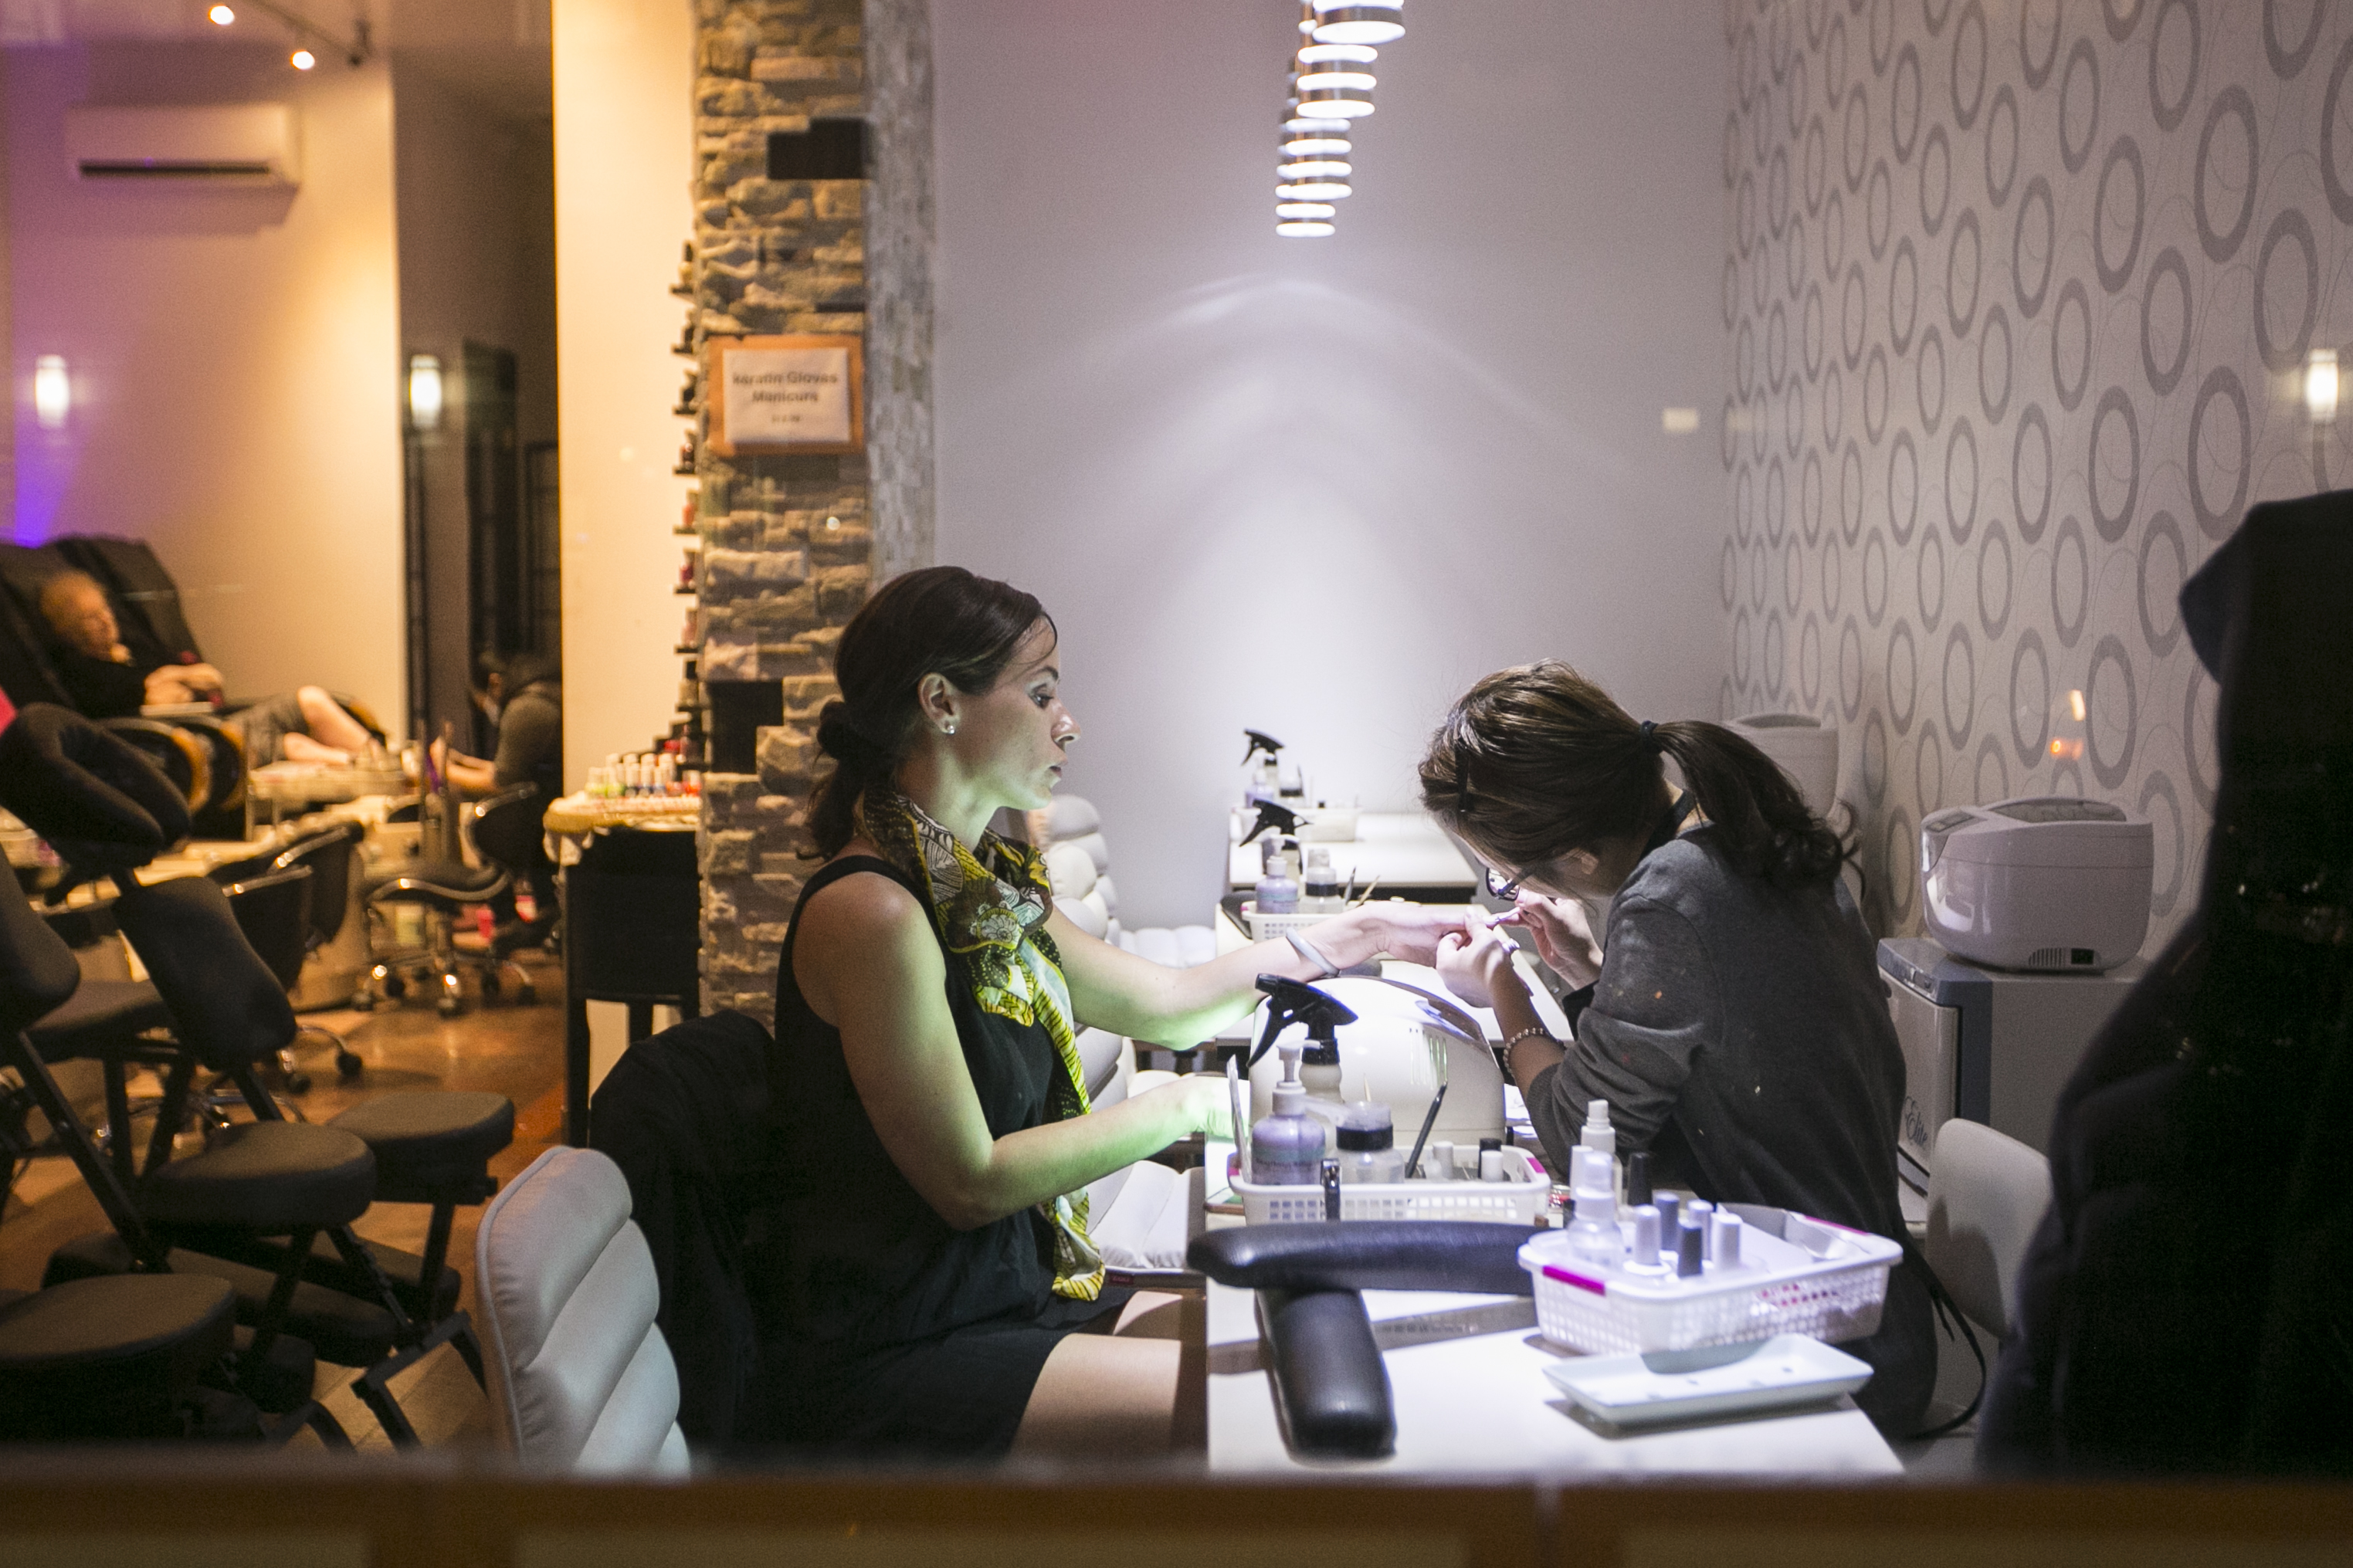 new business report on nail salon 13 things your nail salon doesn't want you to know your nails create big beauty salon business 2013 at 04:55am report as inappropriate.